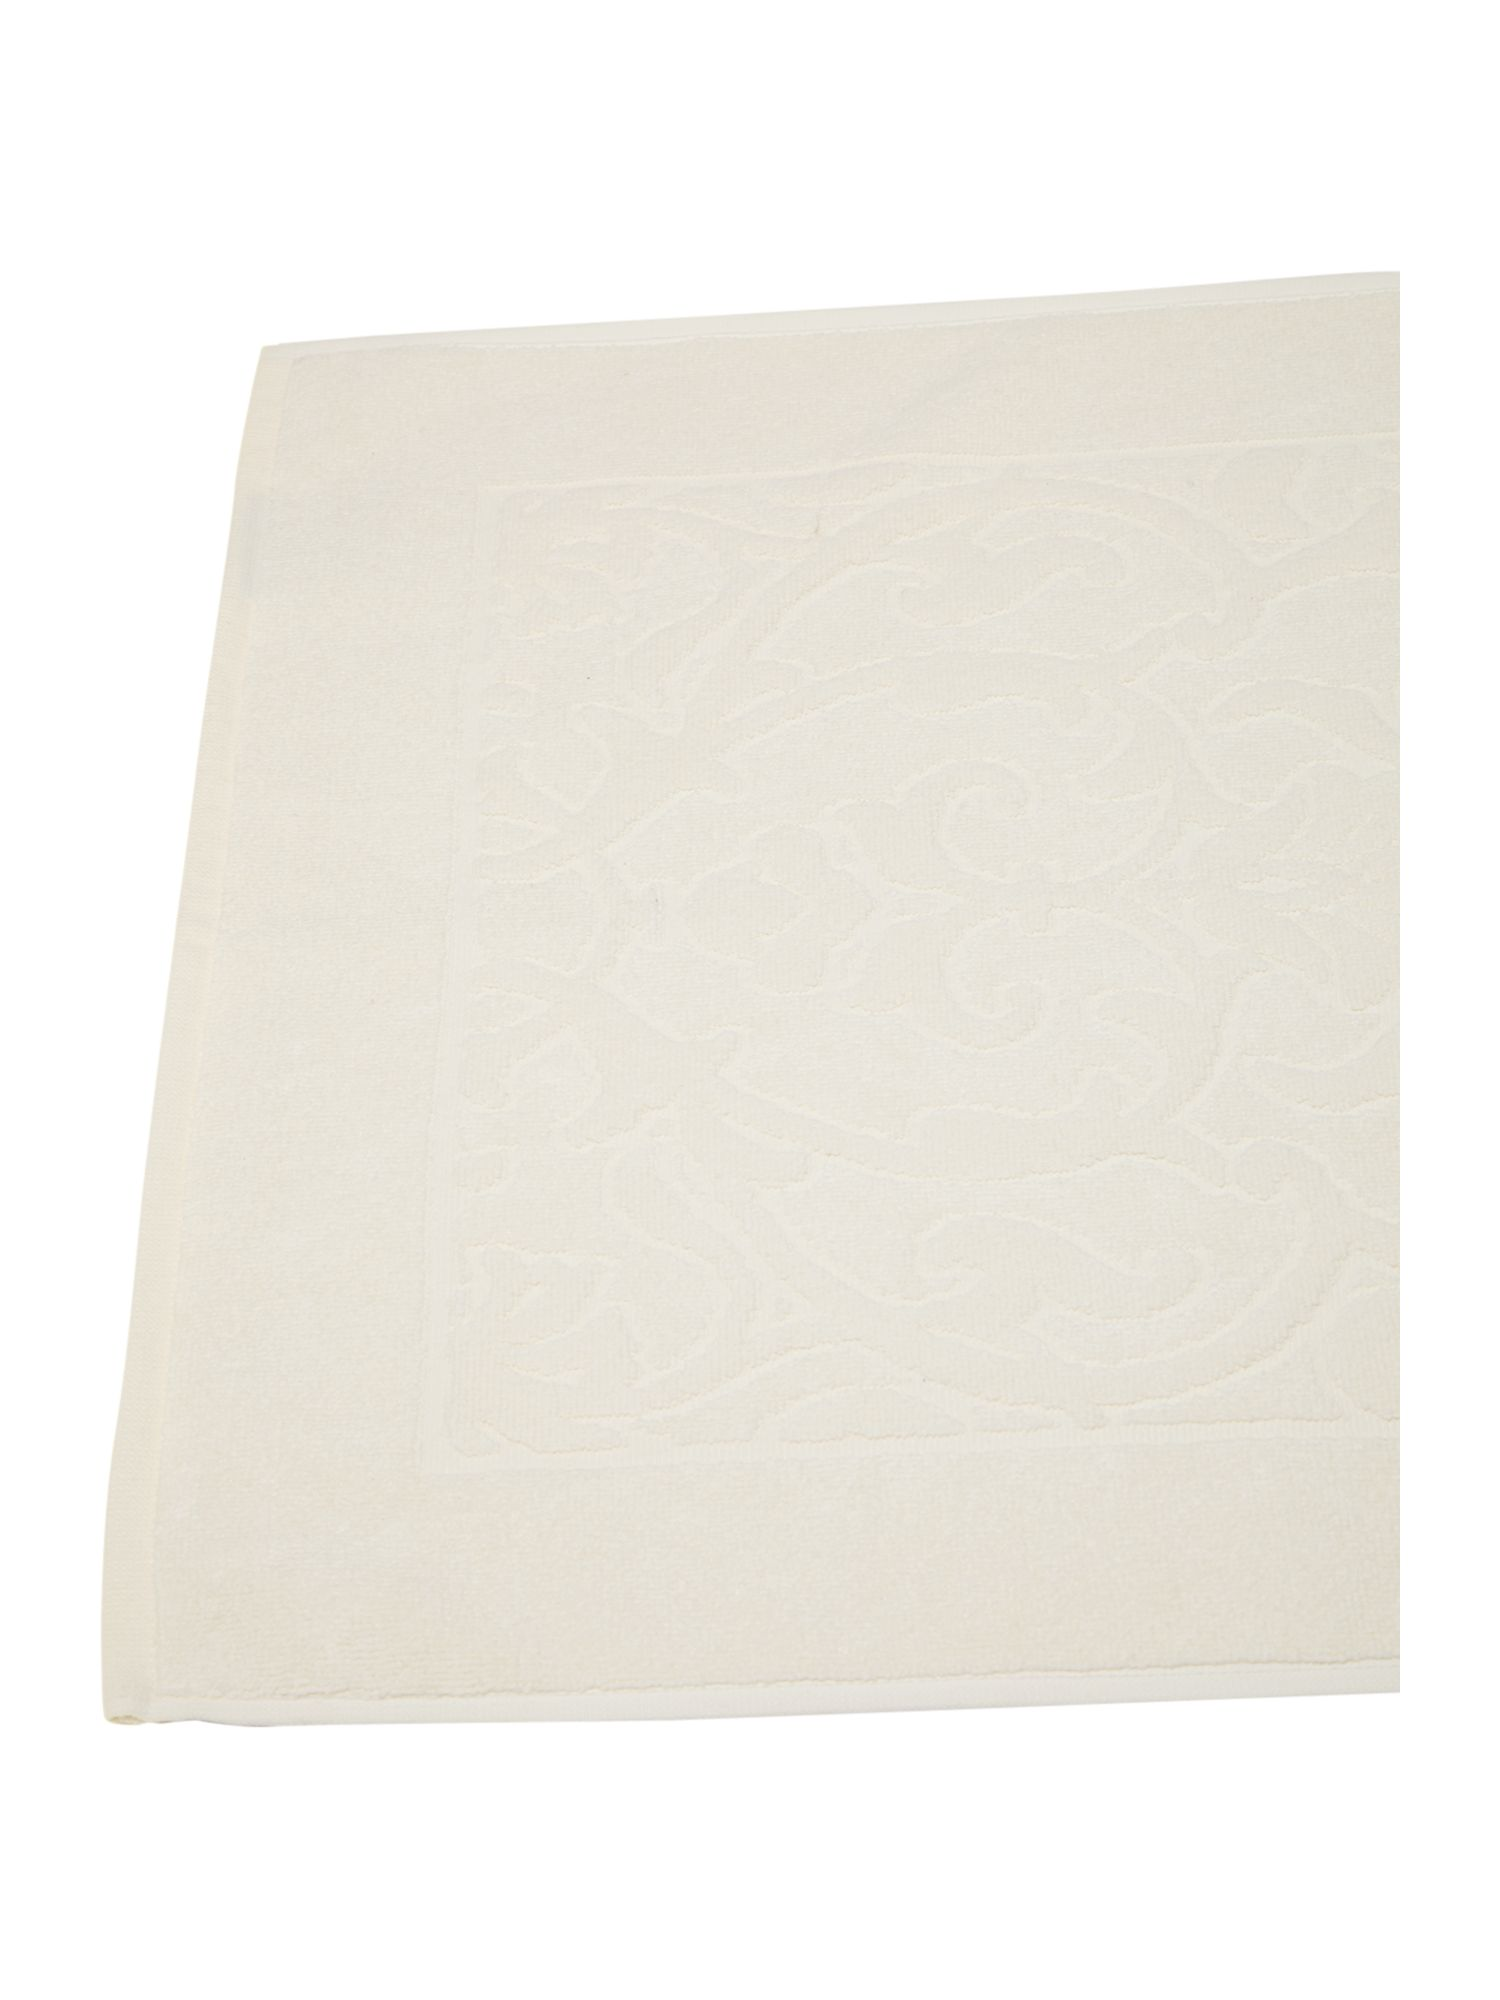 Heavy jacquard bath mat in cream